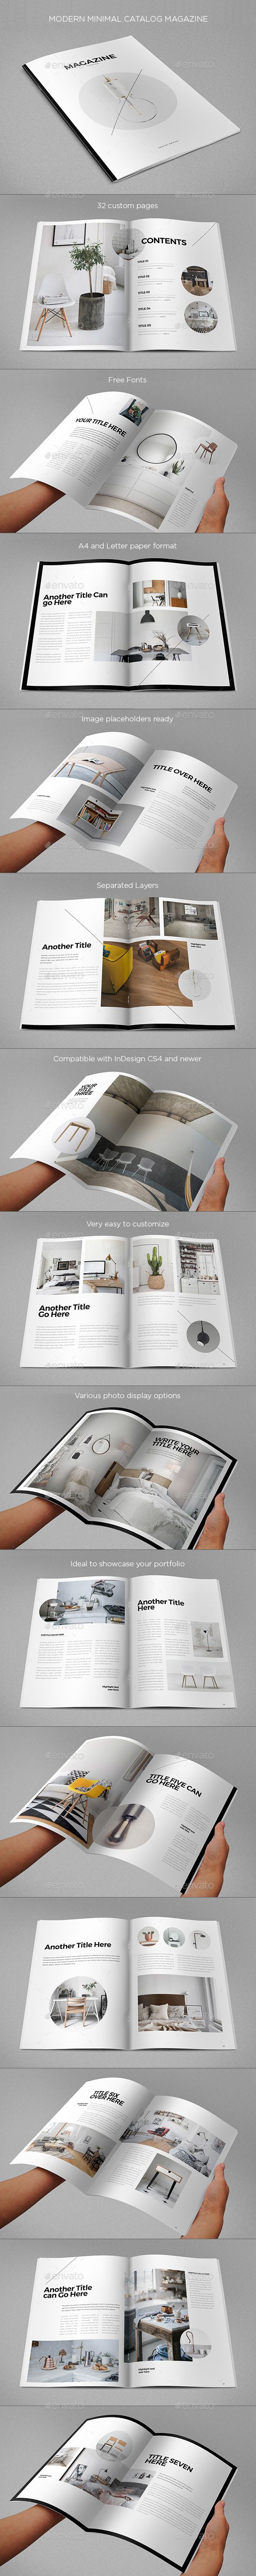 Simple Minimal Catalog Magazine by AbraDesign SIMPLE MINIMAL CATALOG MAGAZINEClean, modern and simple design ideal for any purposes. Very easy to adapt and customize. DETAILS